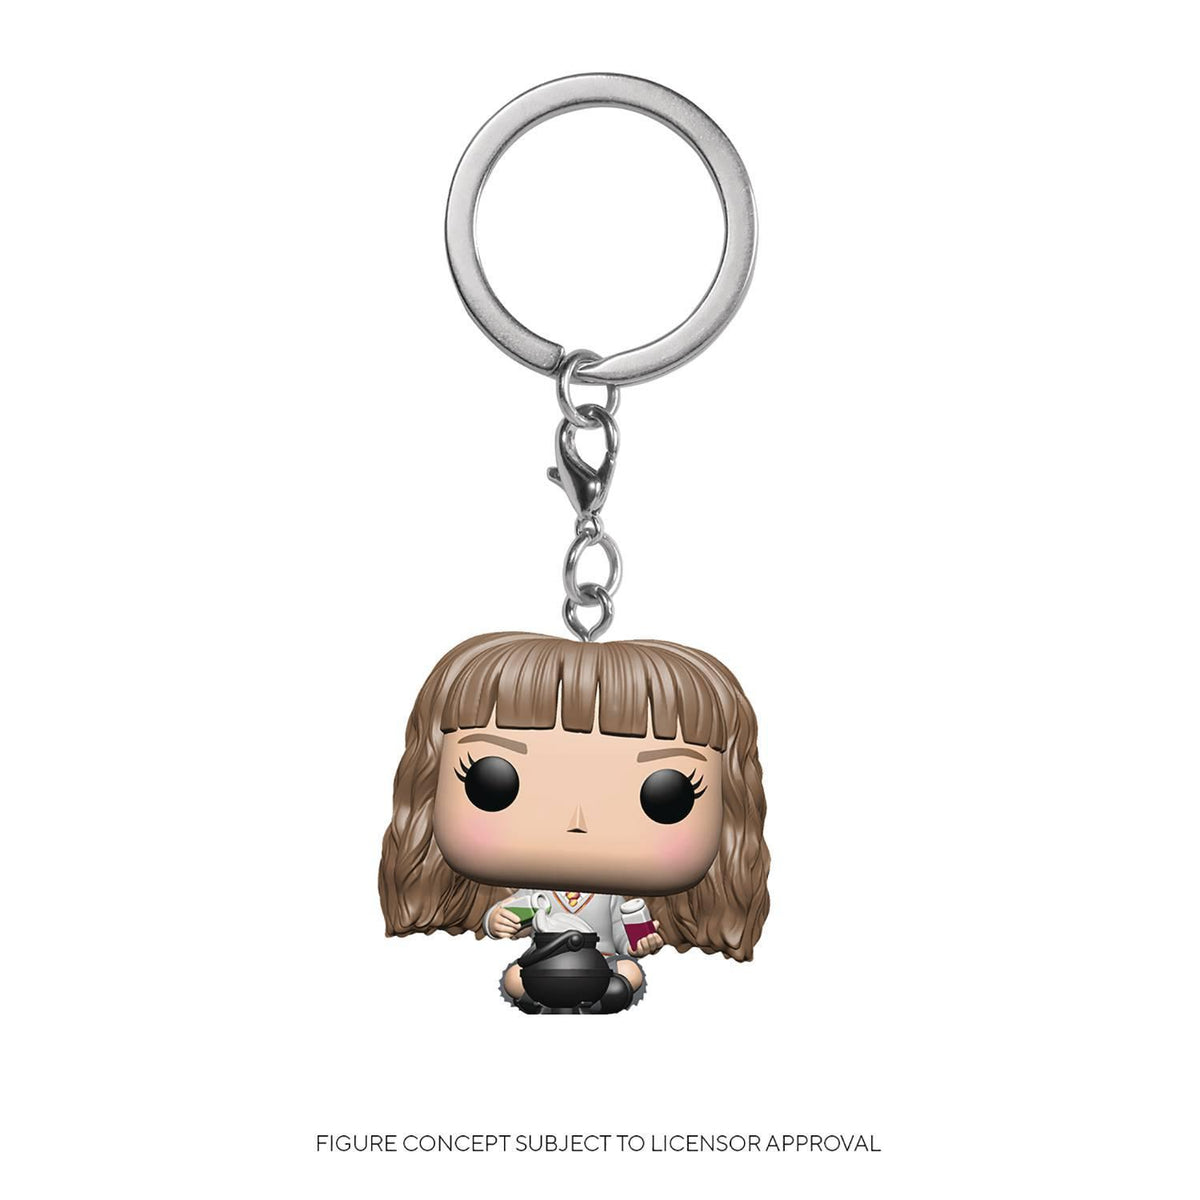 FUNKO POCKET POP HARRY POTTER: HERMIONE WITH POTIONS FIGURAL KEYCHAIN